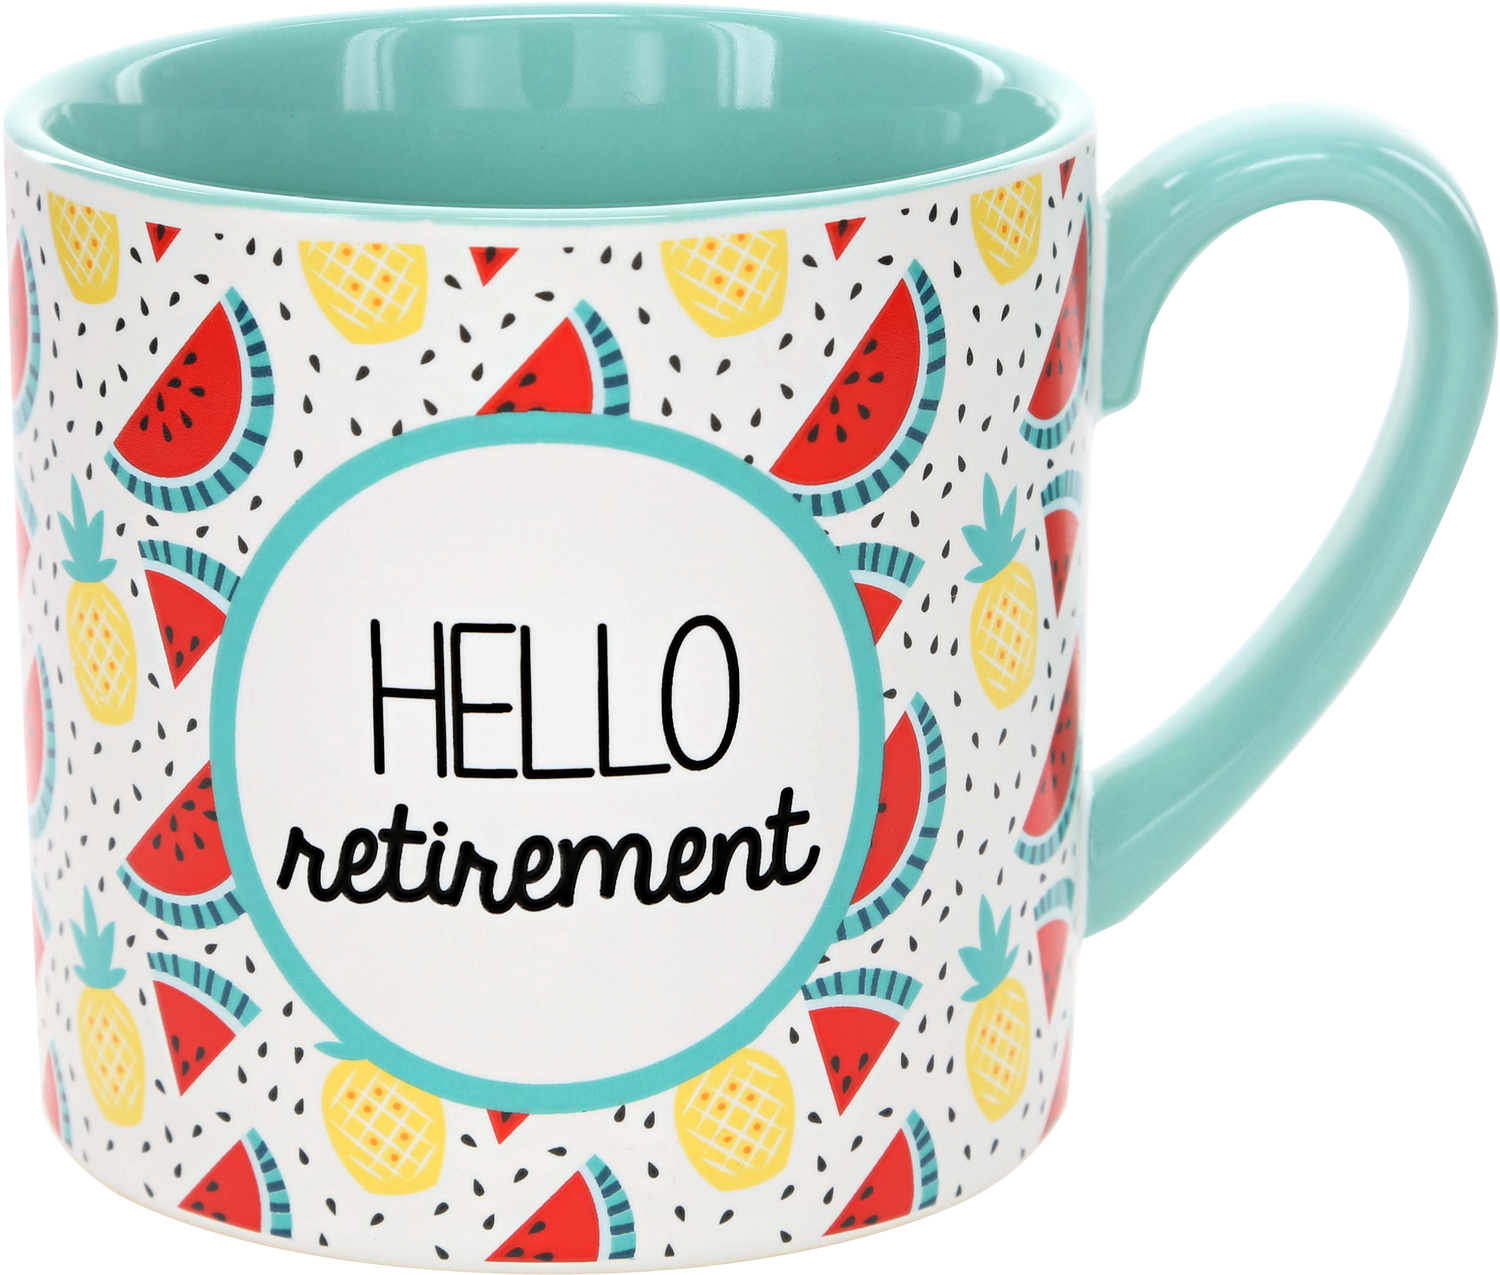 Hello Retirement by Livin' on the Wedge - Hello Retirement - 15 oz Mug